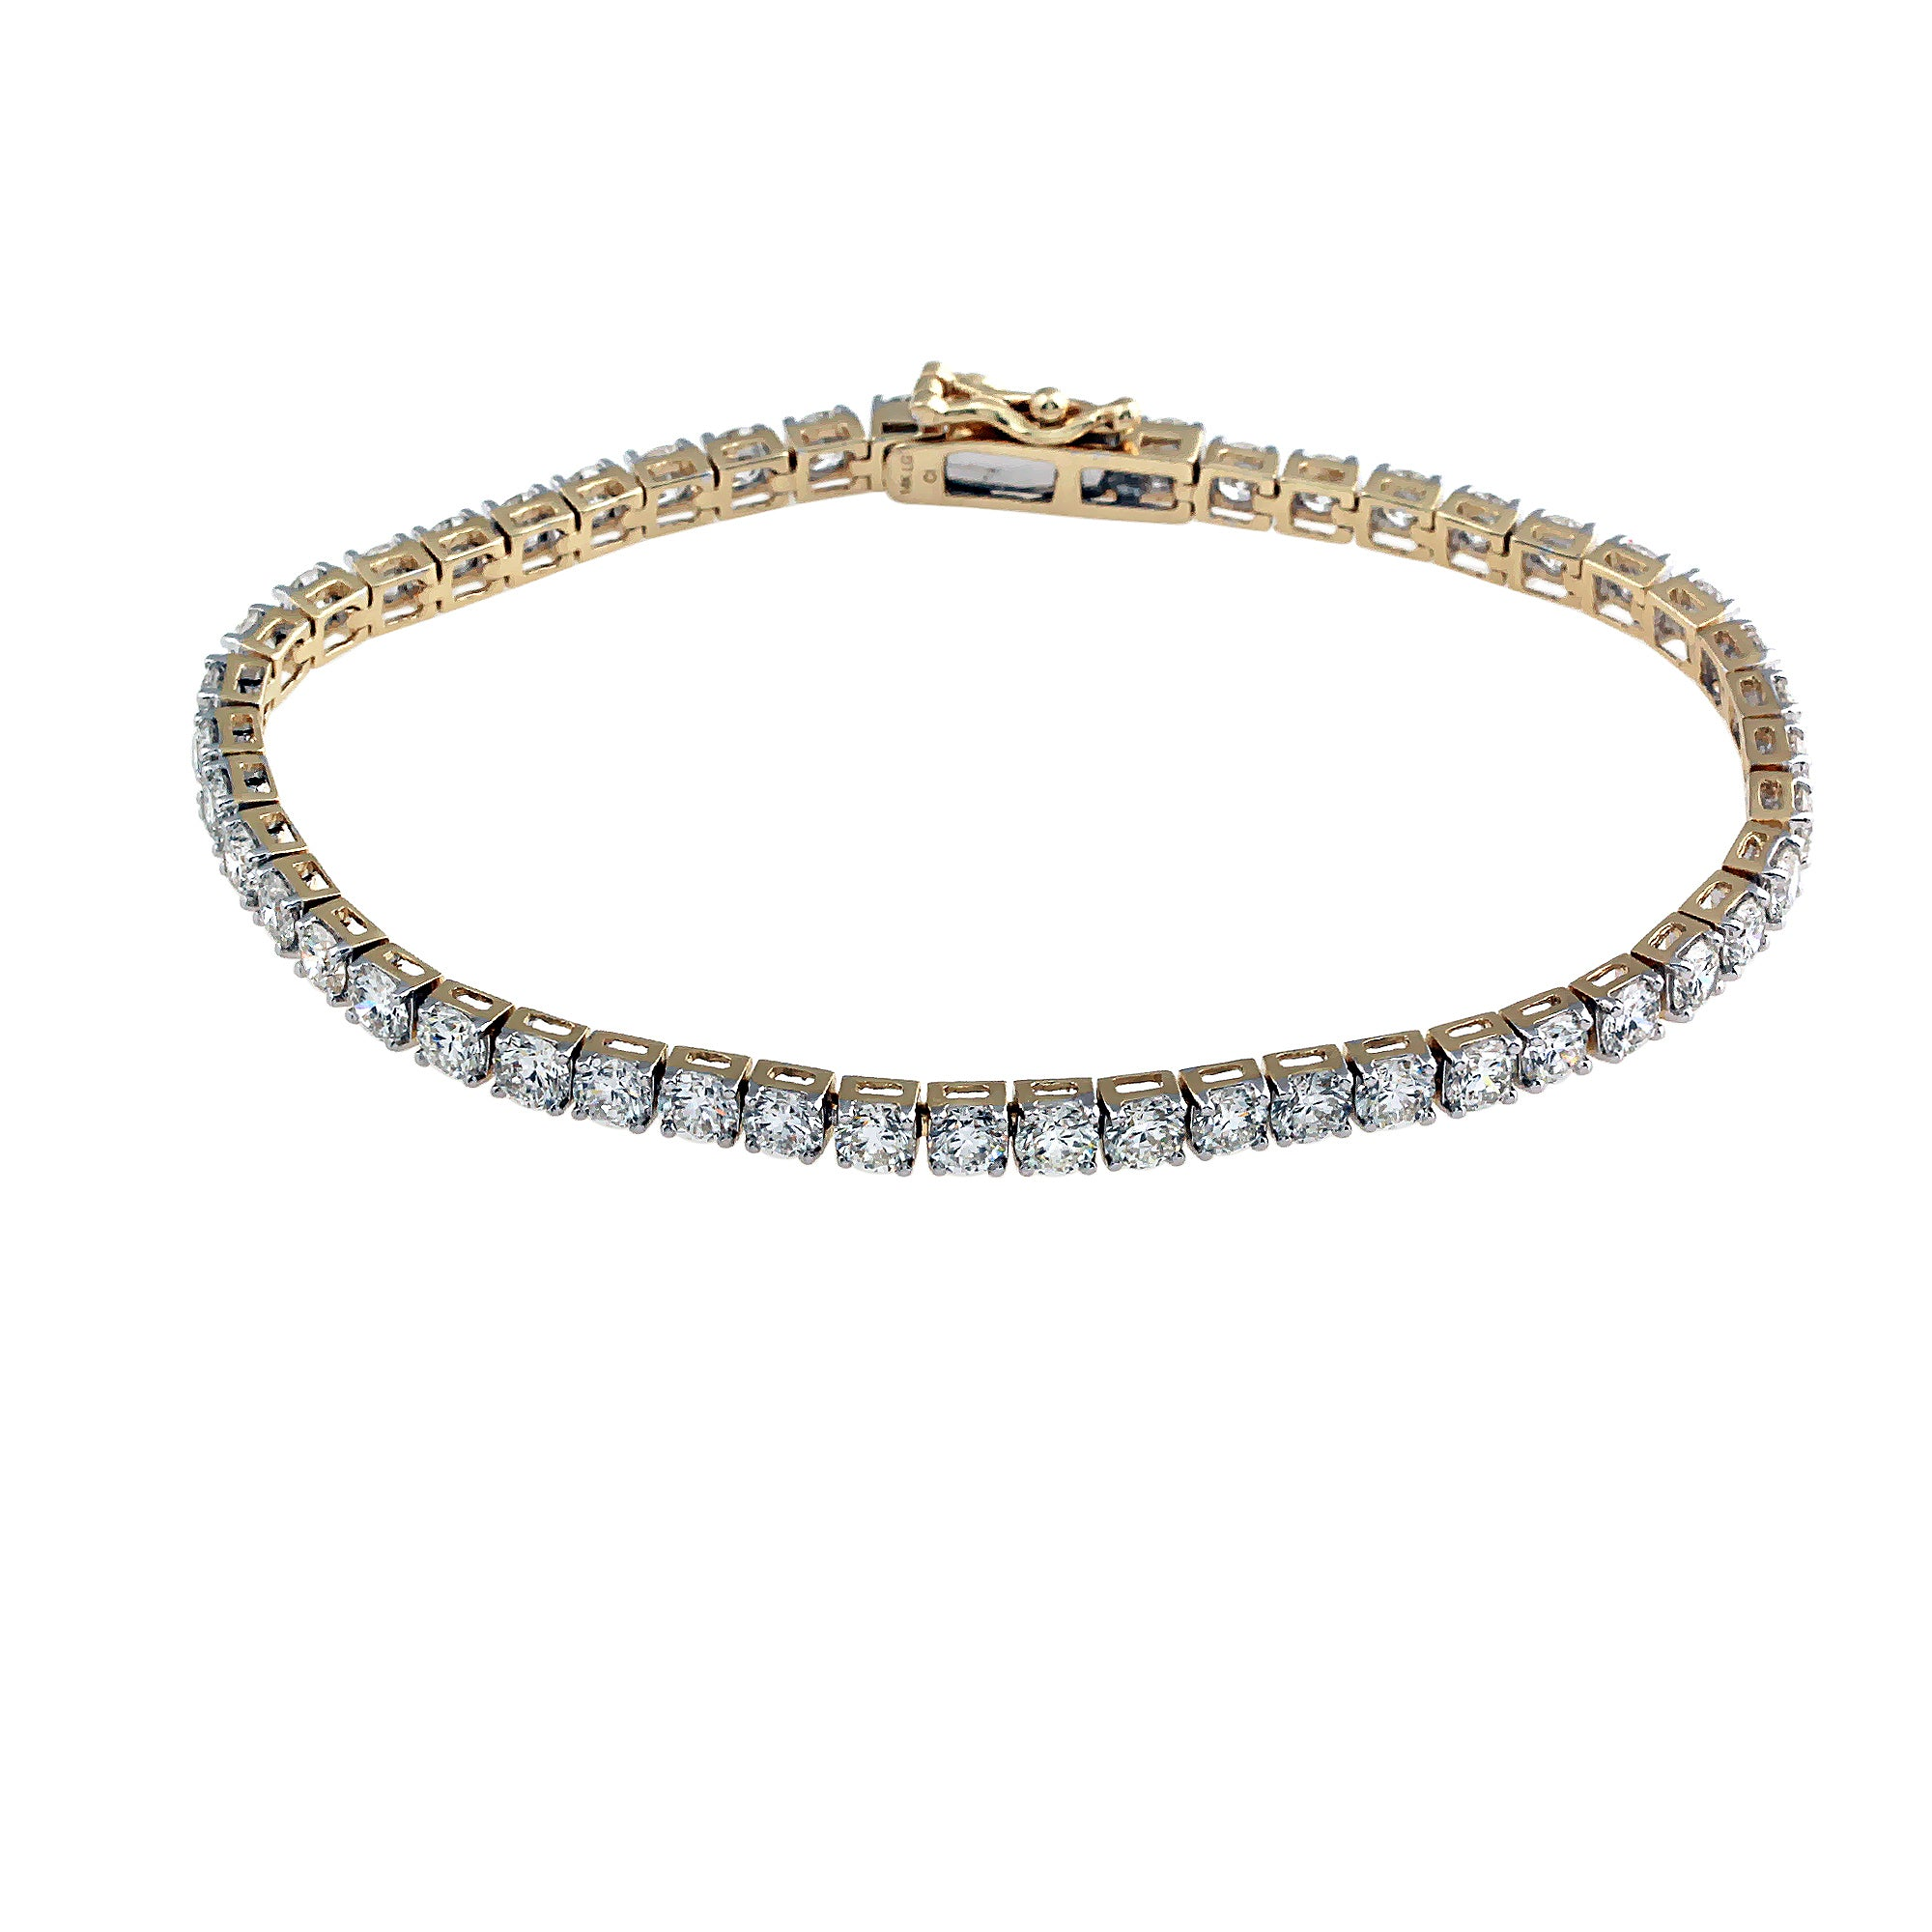 7.00CTW Lab-Grown Diamond Tennis Bracelet in 14K Gold